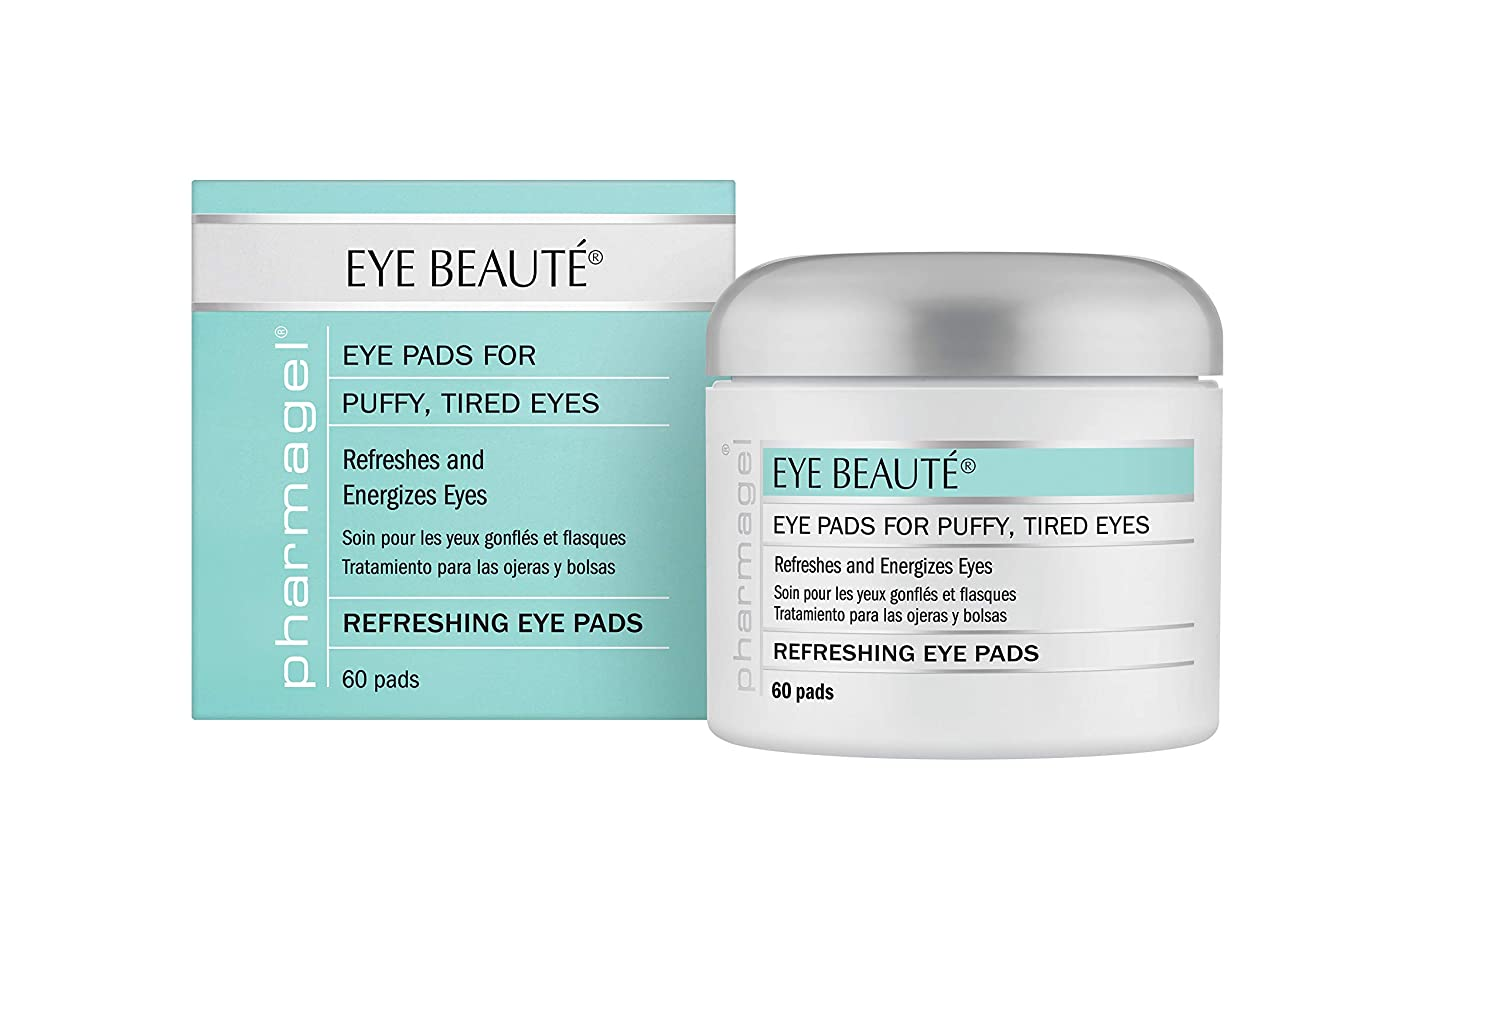 Pharmagel Complexe Eye Beaute Treatment Pads | Herbal Solution | Under Eye Bags and Puffy Eyes Treatment | Pads for Tired, Swollen, and Sagging Eyes - ...